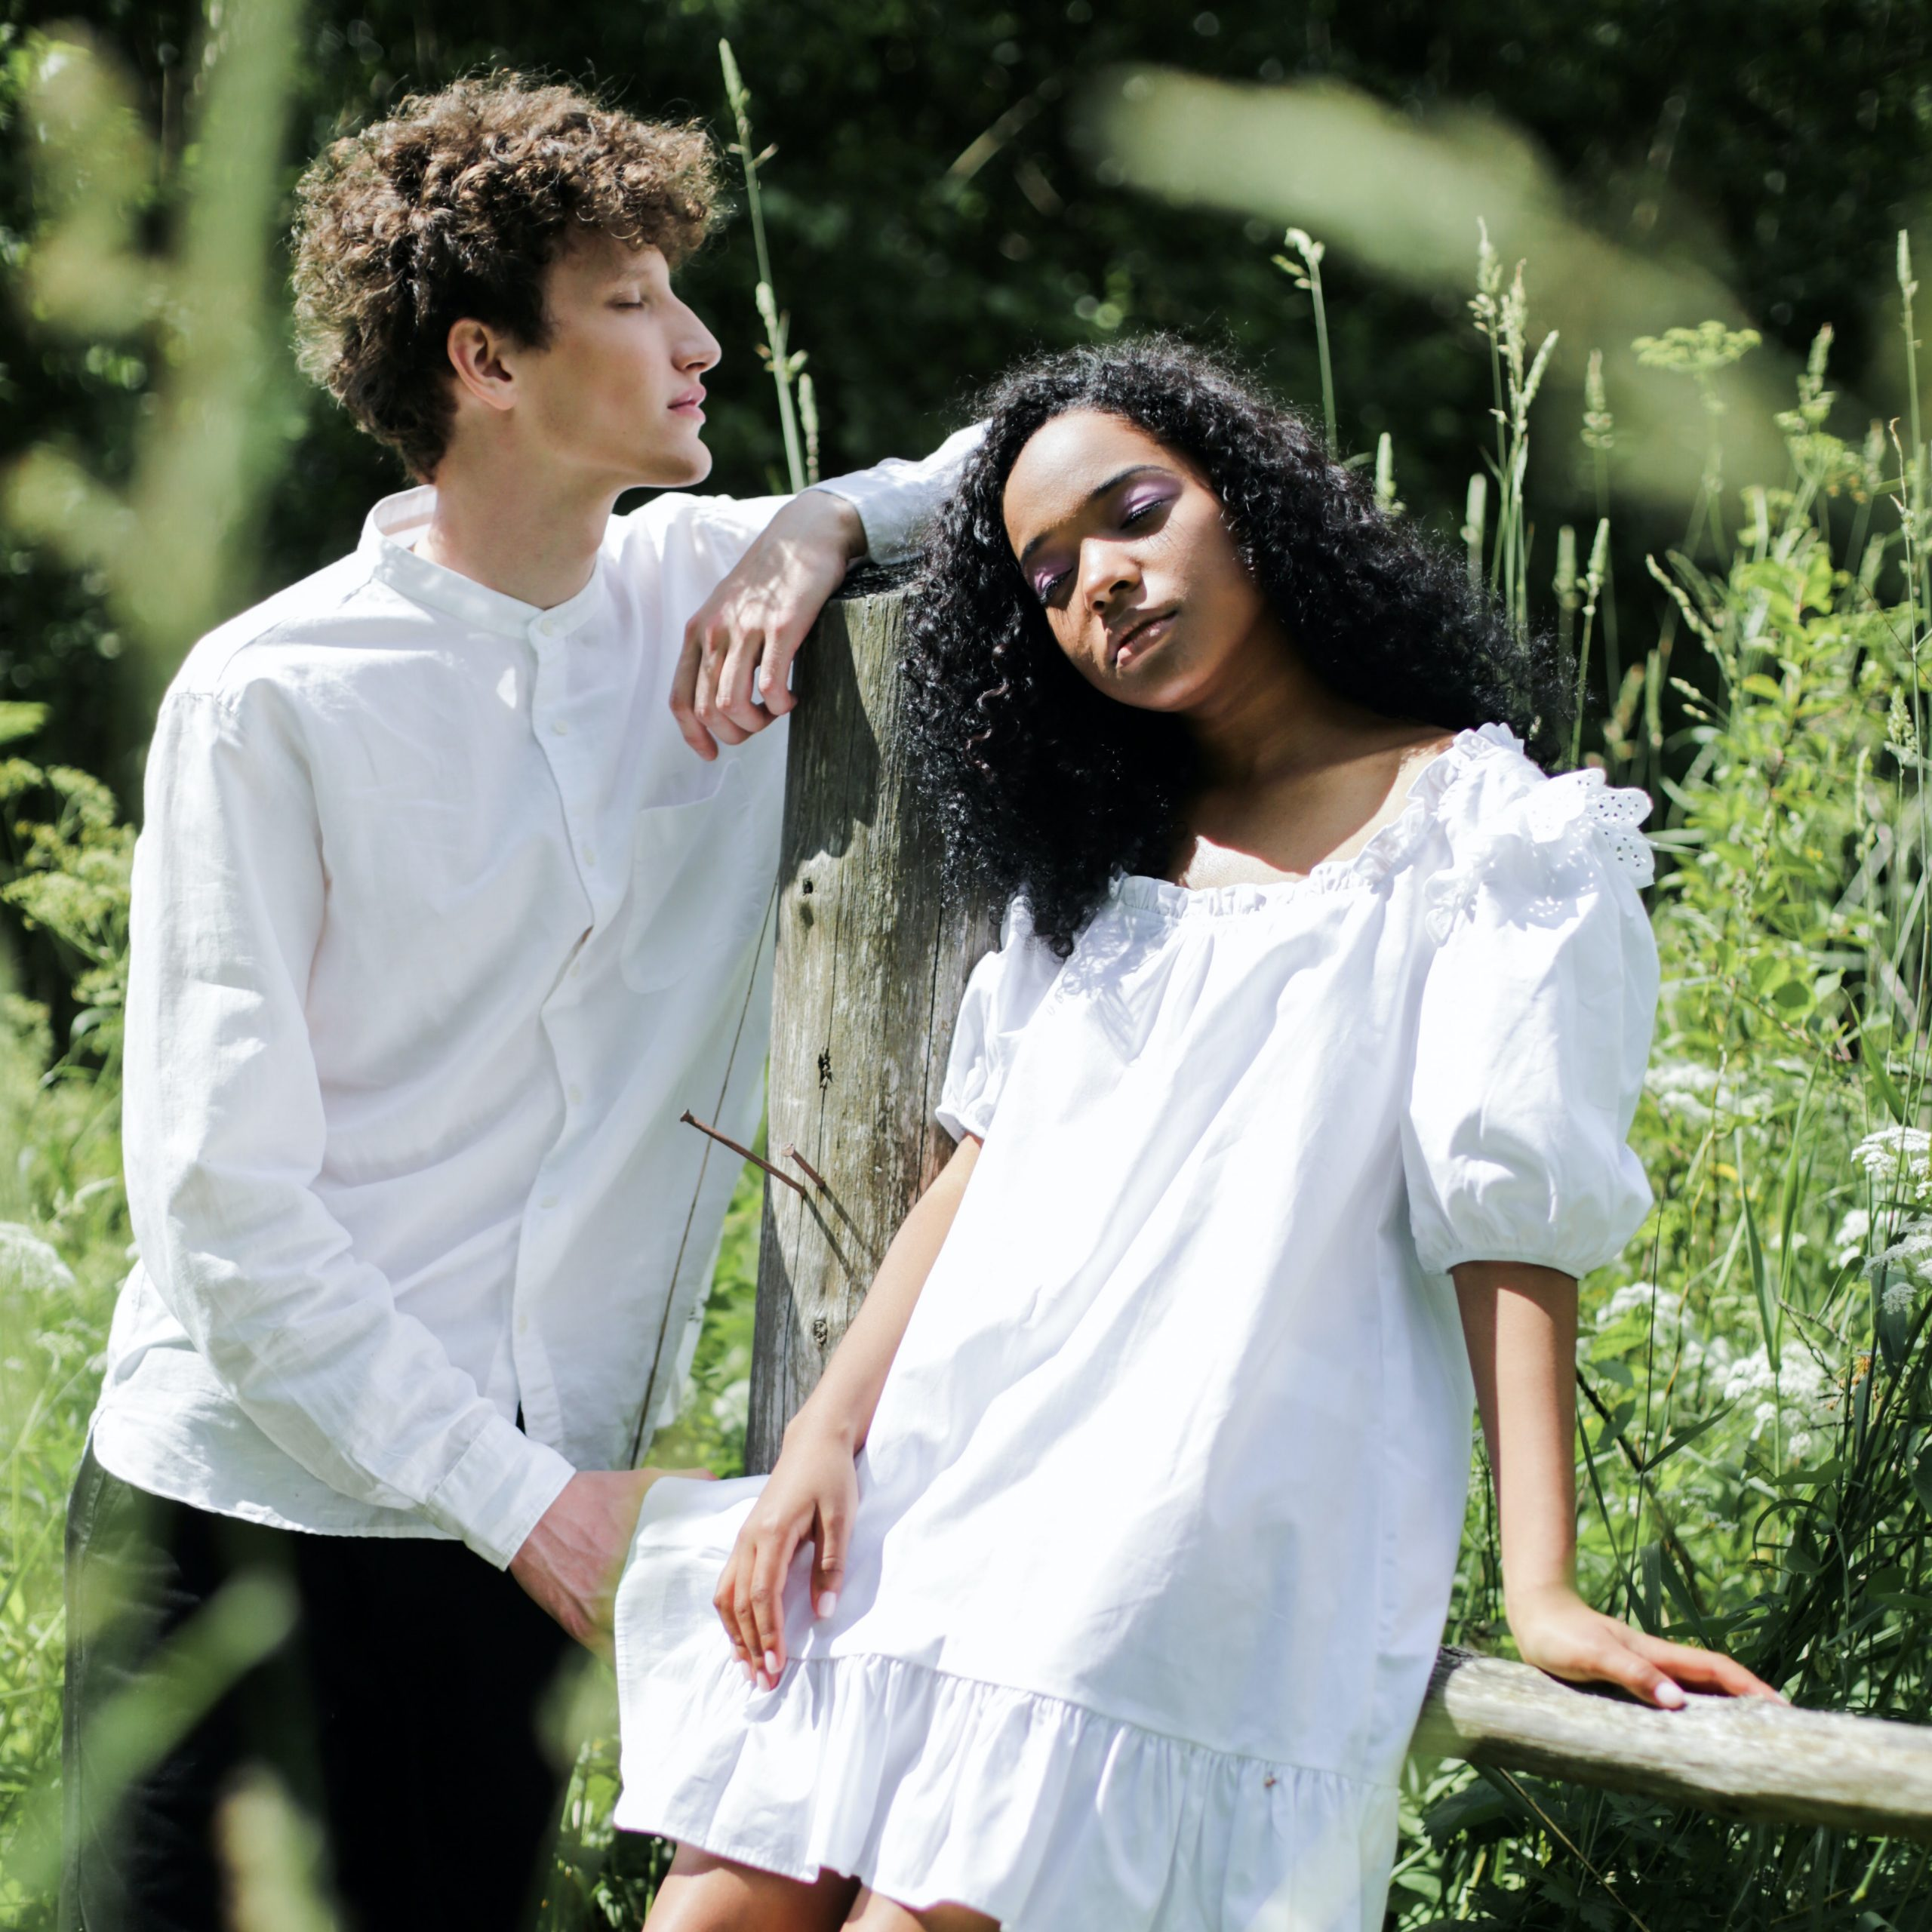 2 people in front of greenery